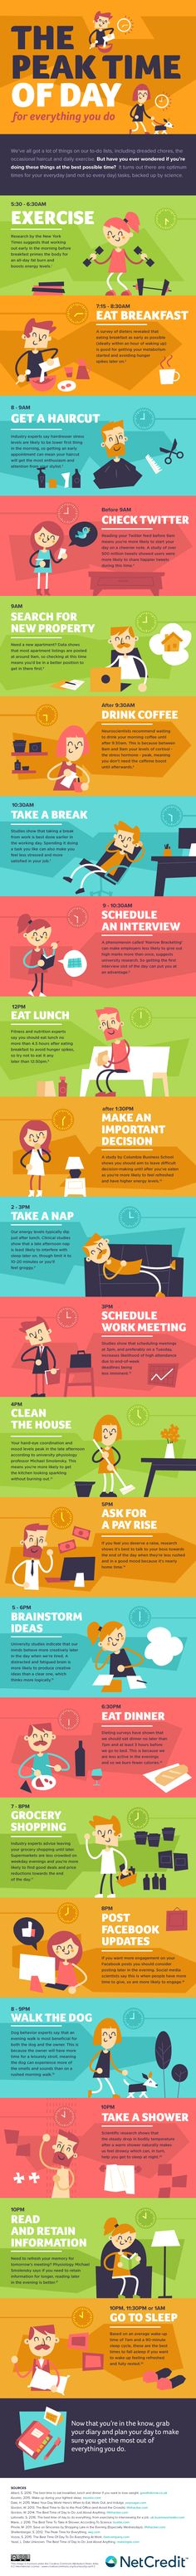 The Best Time of Day to Do Everything According to Science [Infographic]